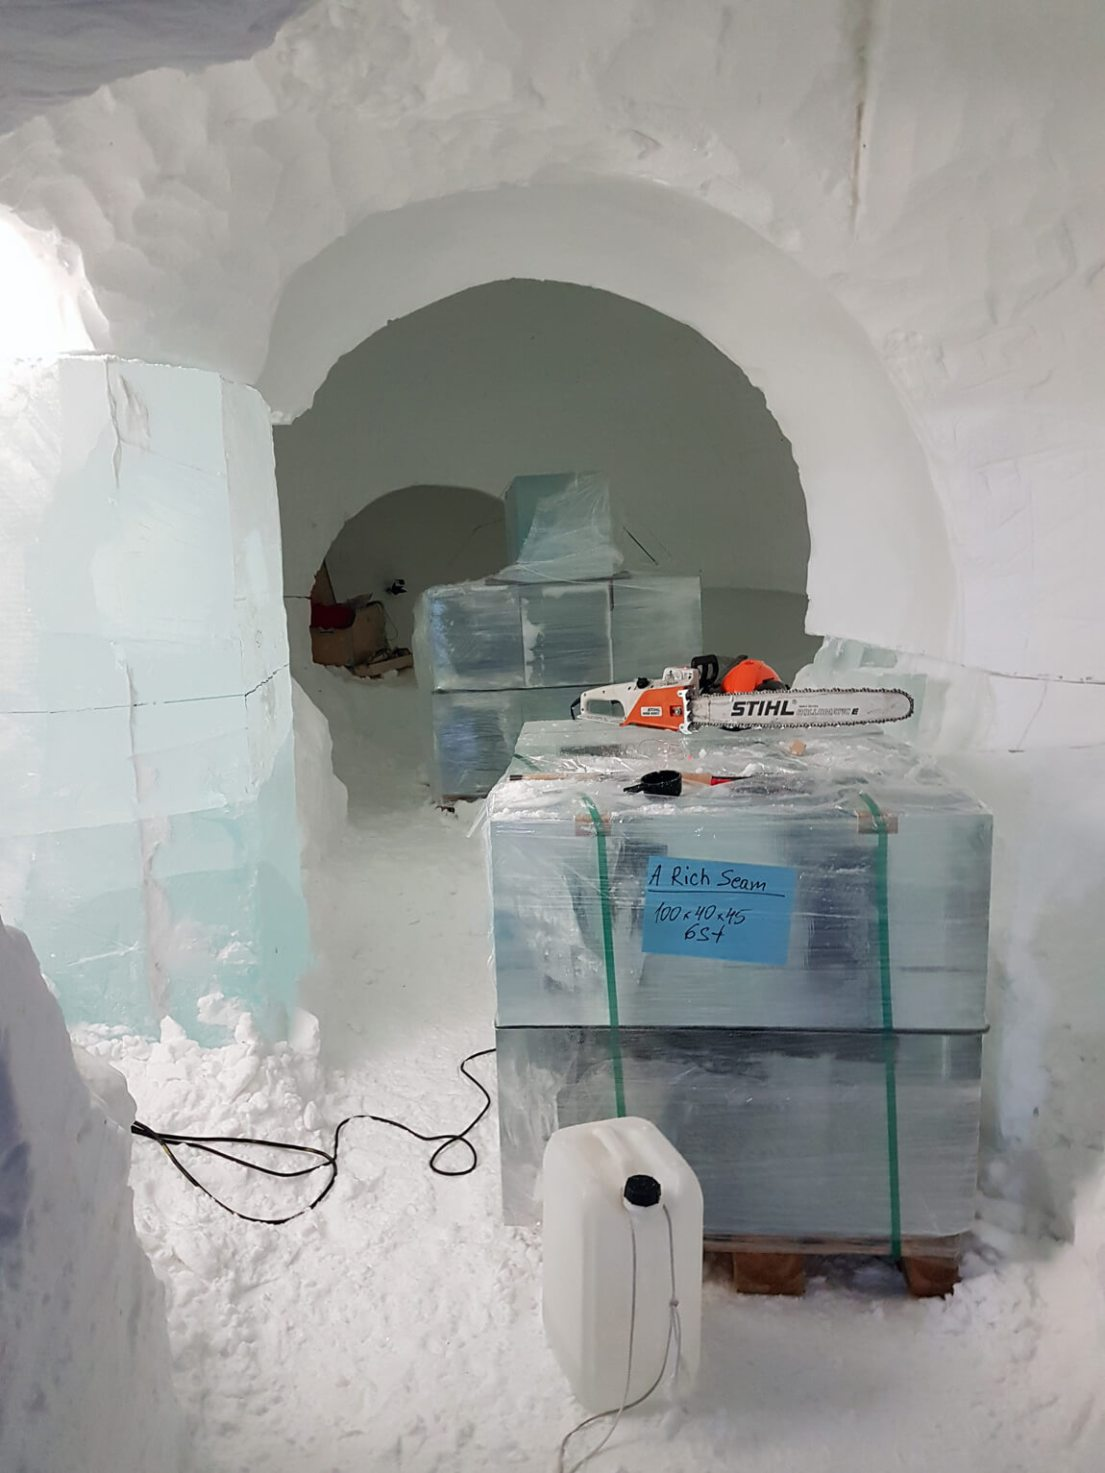 ICEHOTEL Sweden is built entirely of ice. The ice blocks have here been delivered, ready for carving.